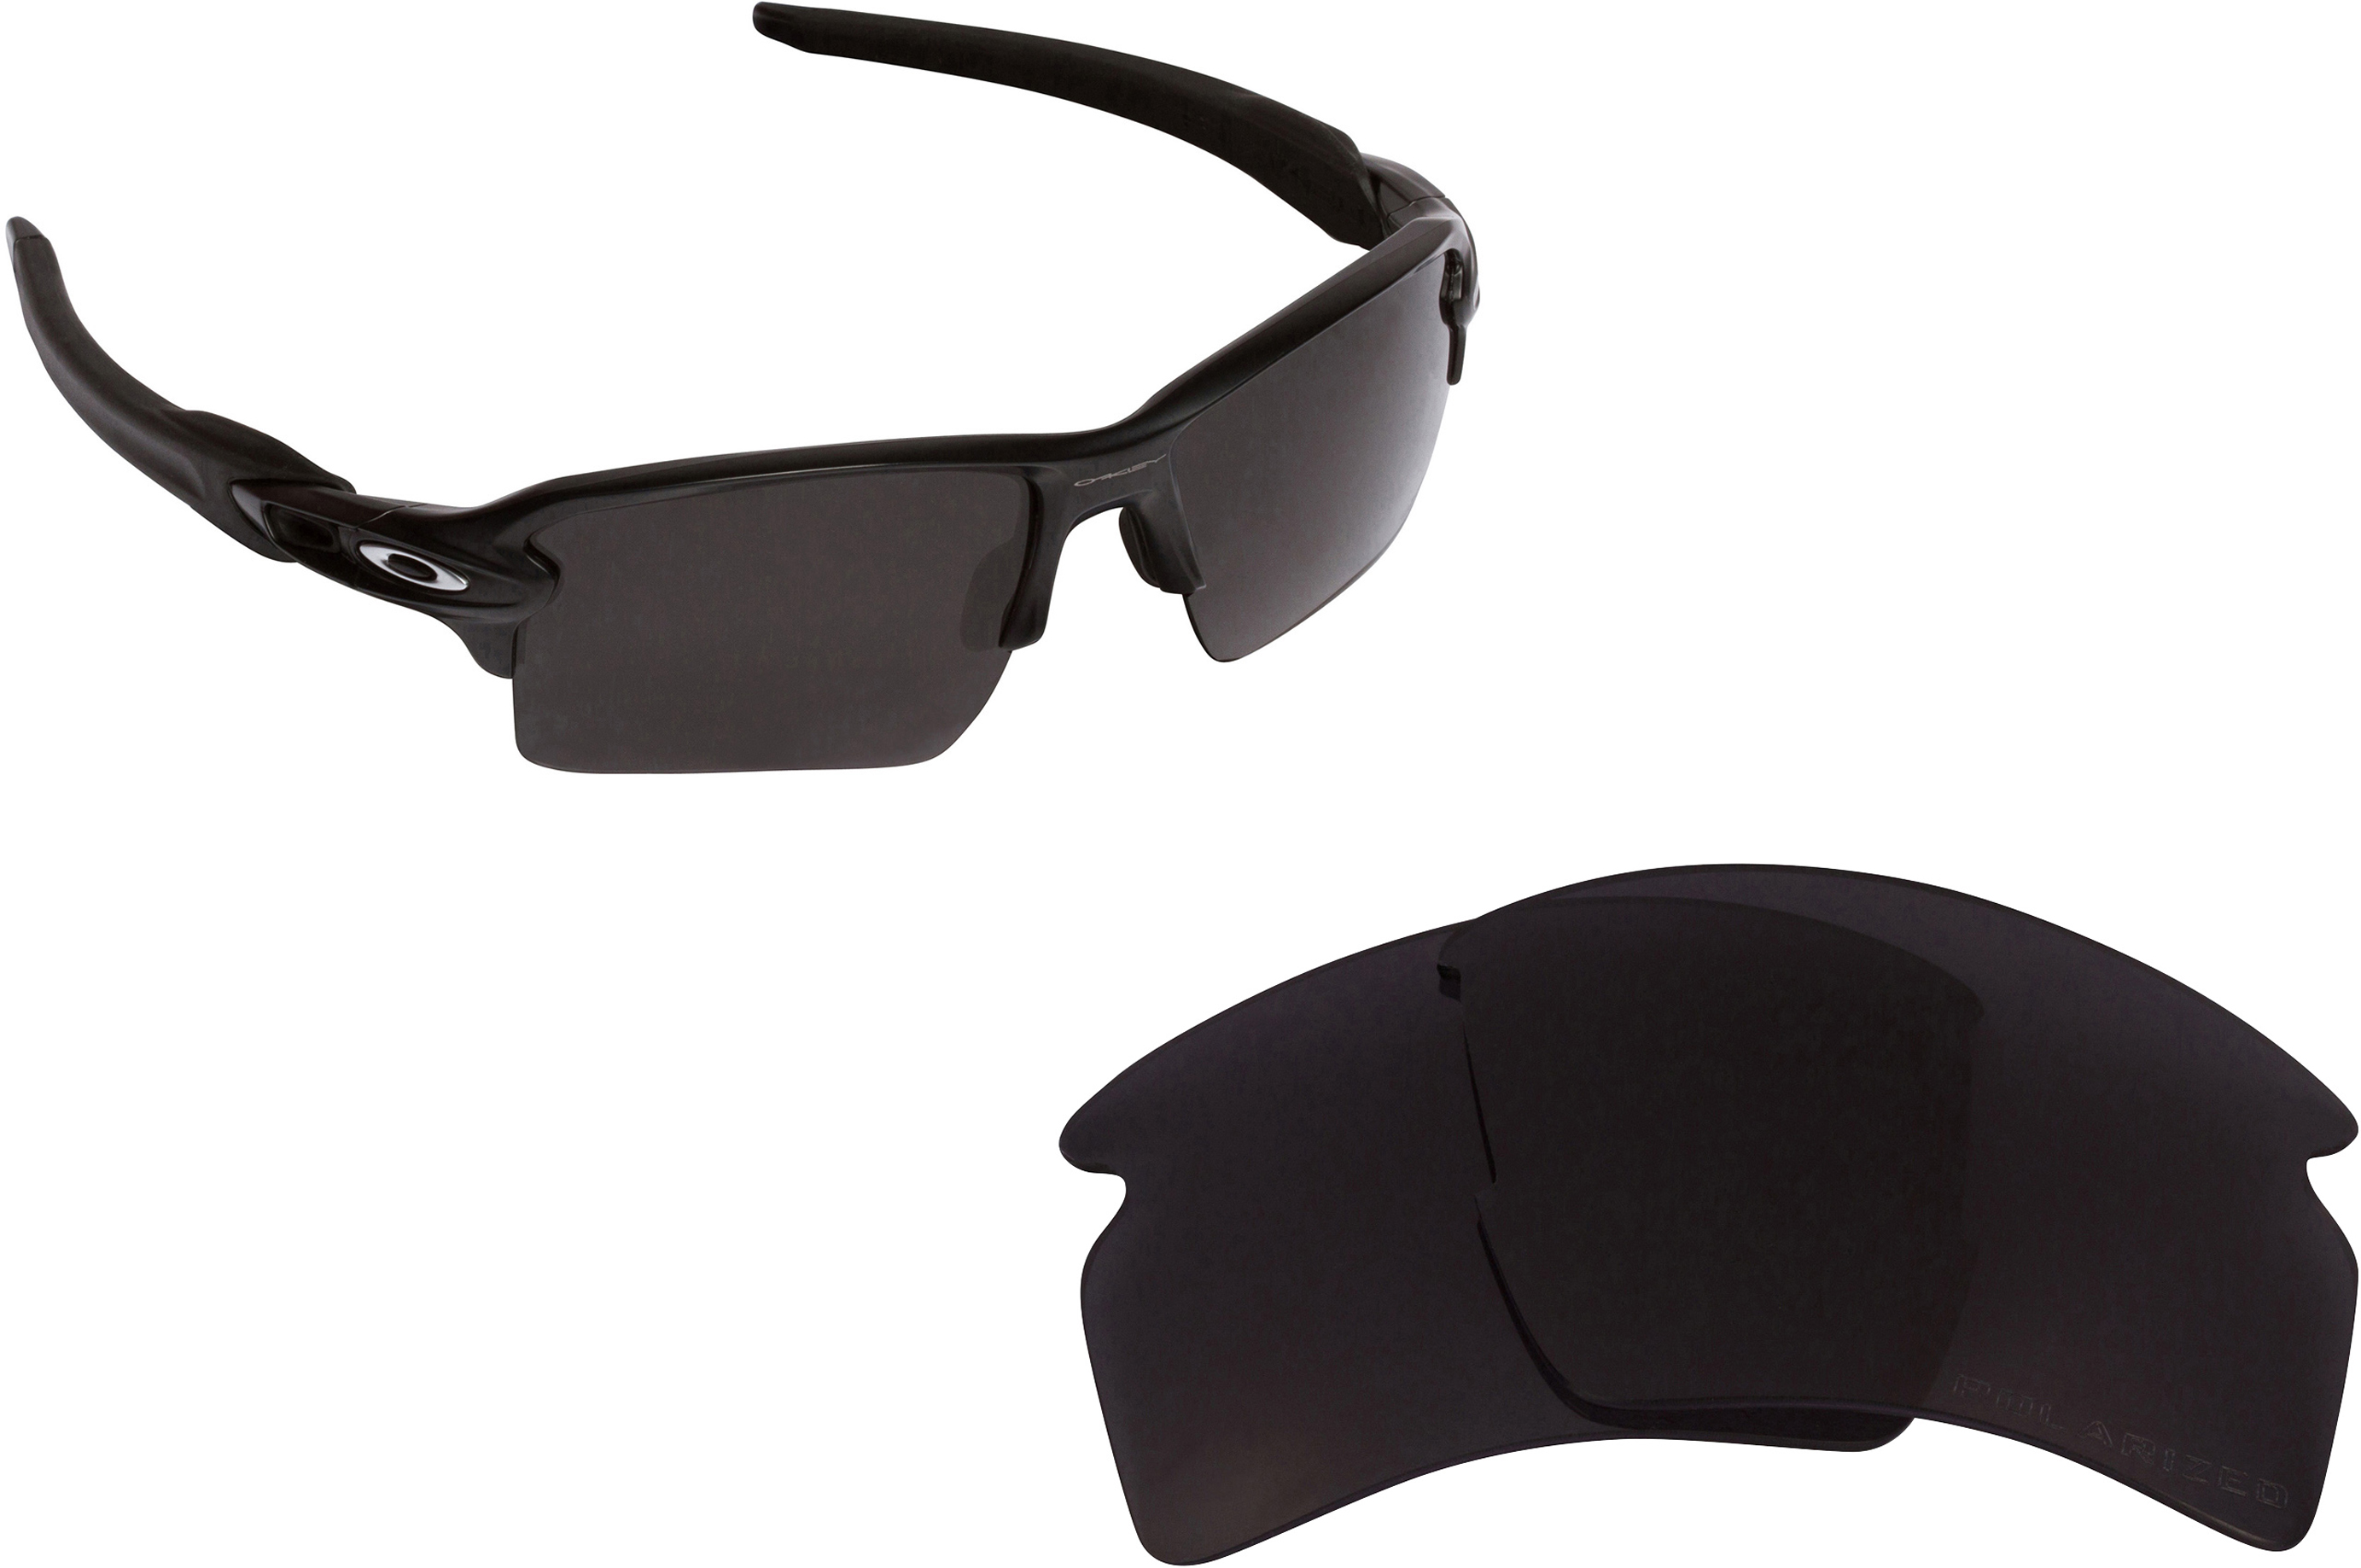 f1fba6e72d1 Seek Optics Replacement Lenses for Oakley Flak 2.0 XL Black. Be the first  to write a review. About this product. Picture 1 of 6 ...